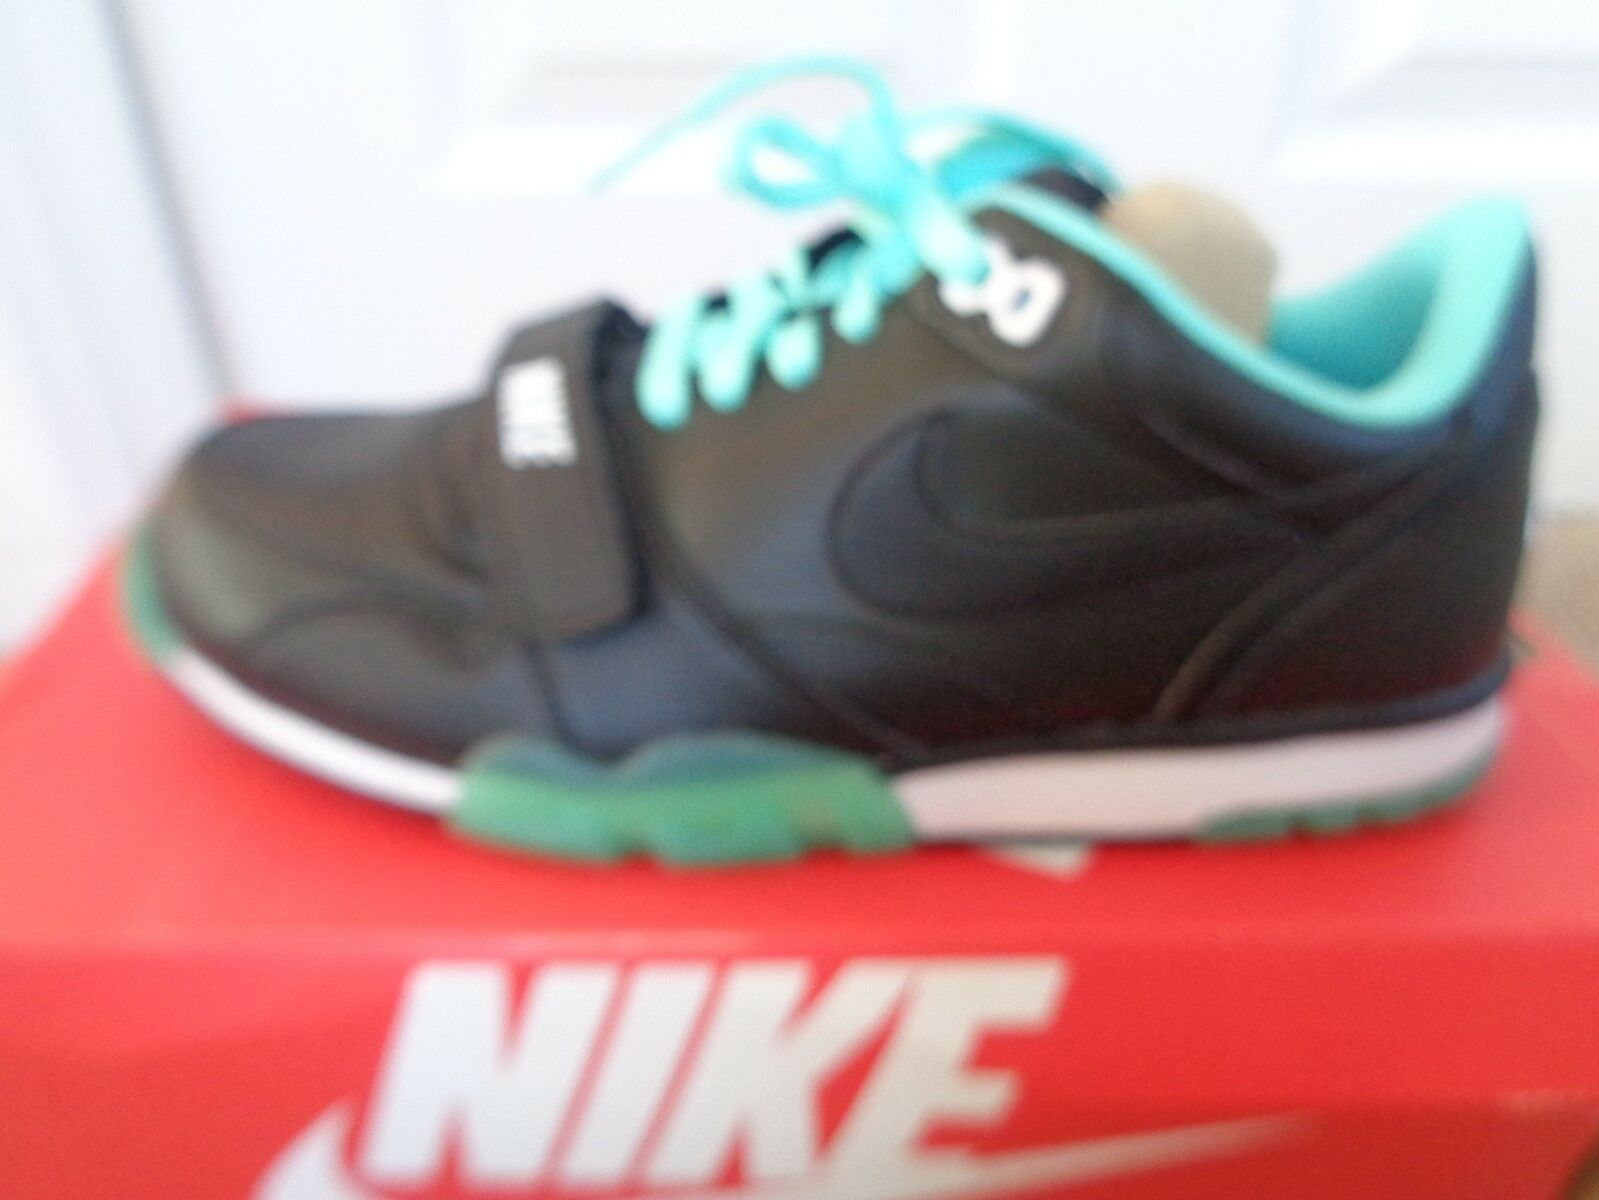 Nike Air trainer 1 faible ST trainers 7.5 sneakers 637995 005 uk 7.5 trainers eu 42 us 8.5 NEW 3a46b9